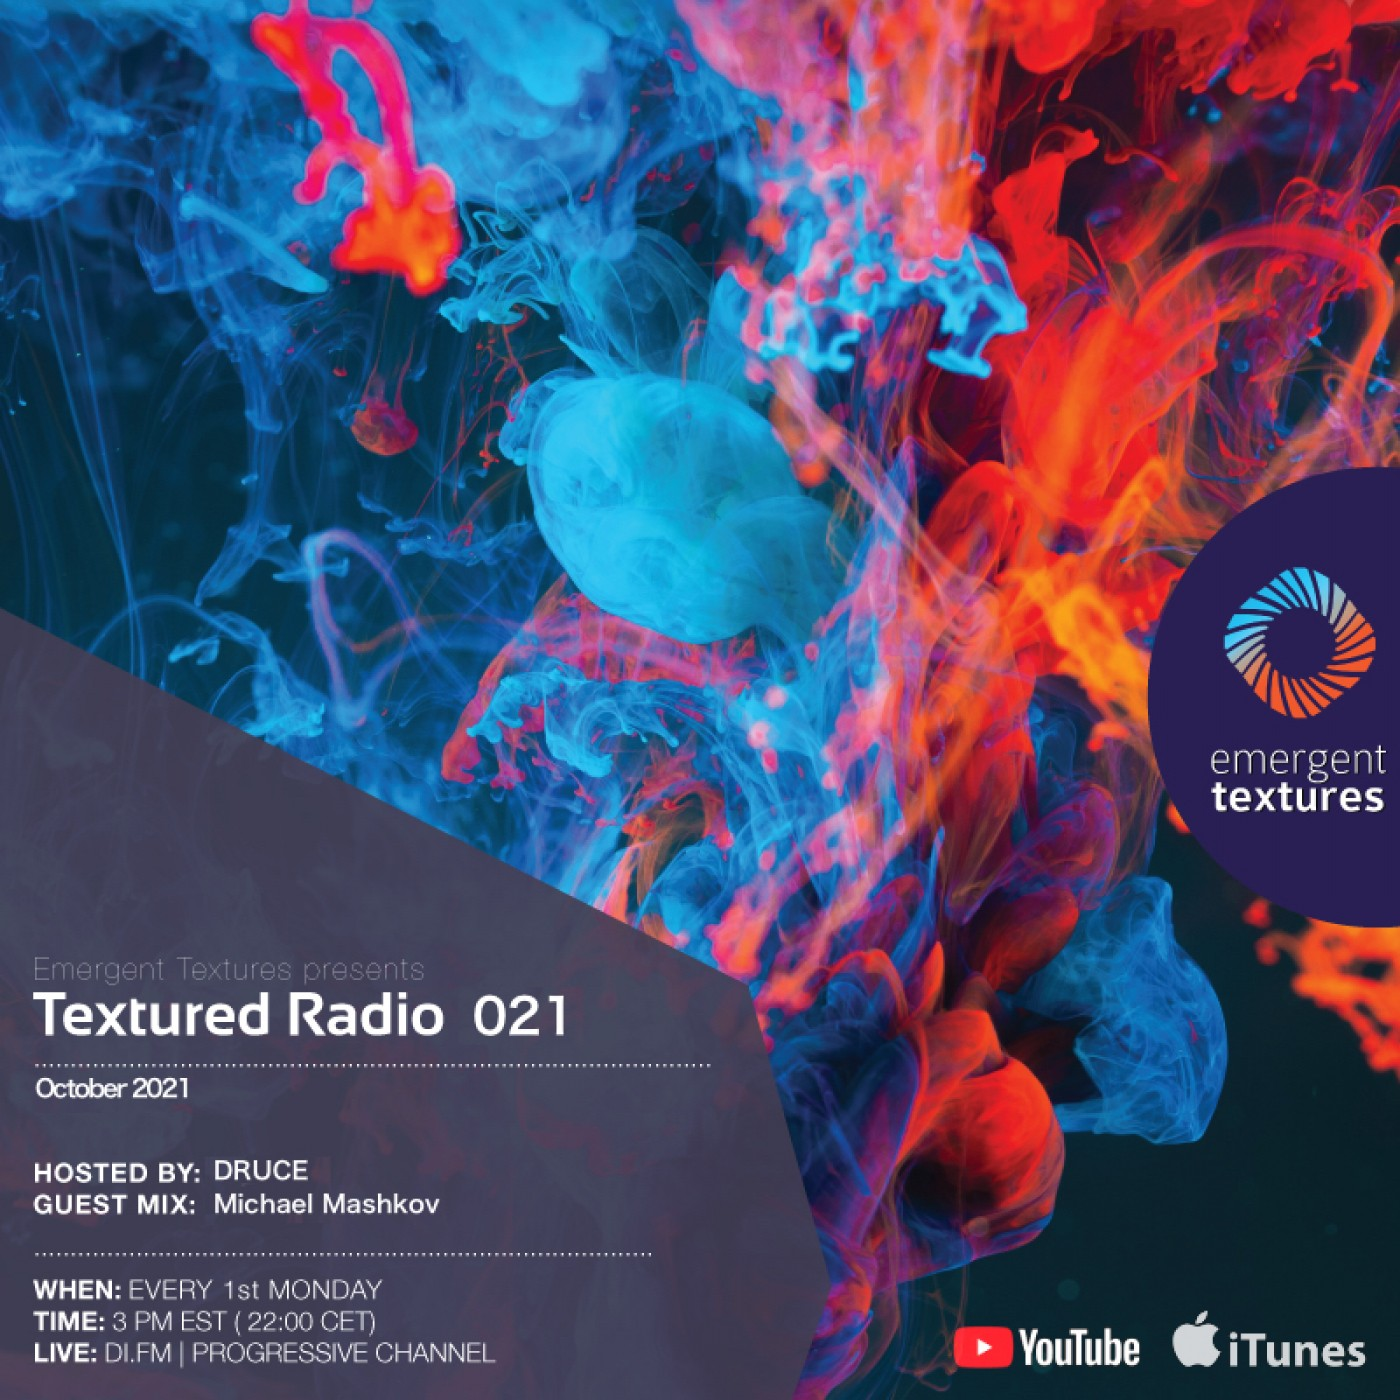 Textured Radio 021 hosted by Druce